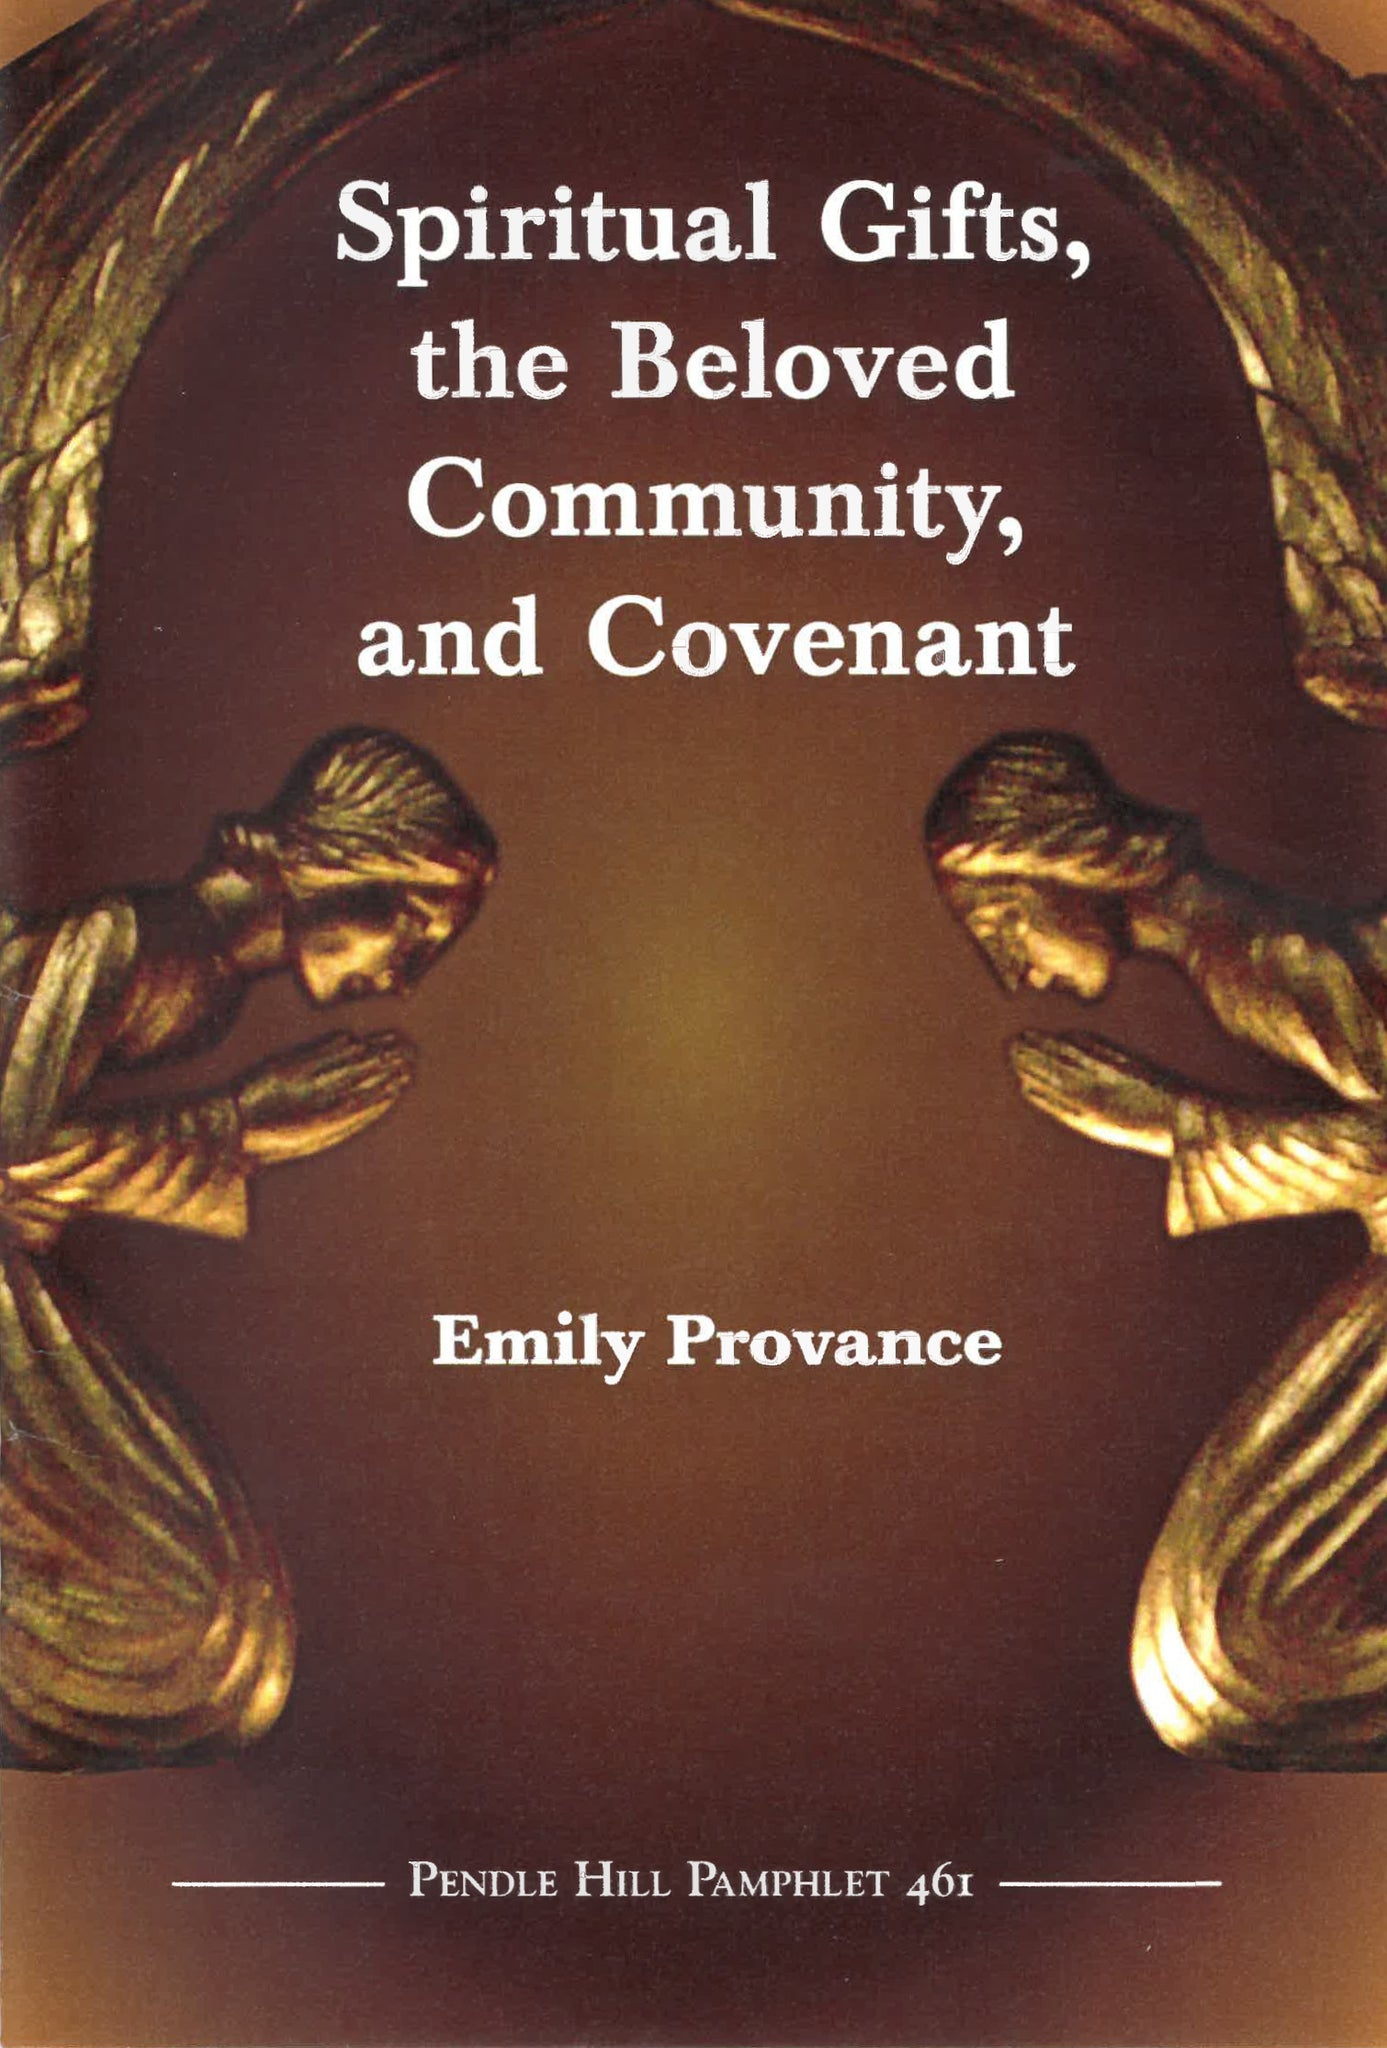 Spiritual Gifts, the Beloved Community, and Covenant